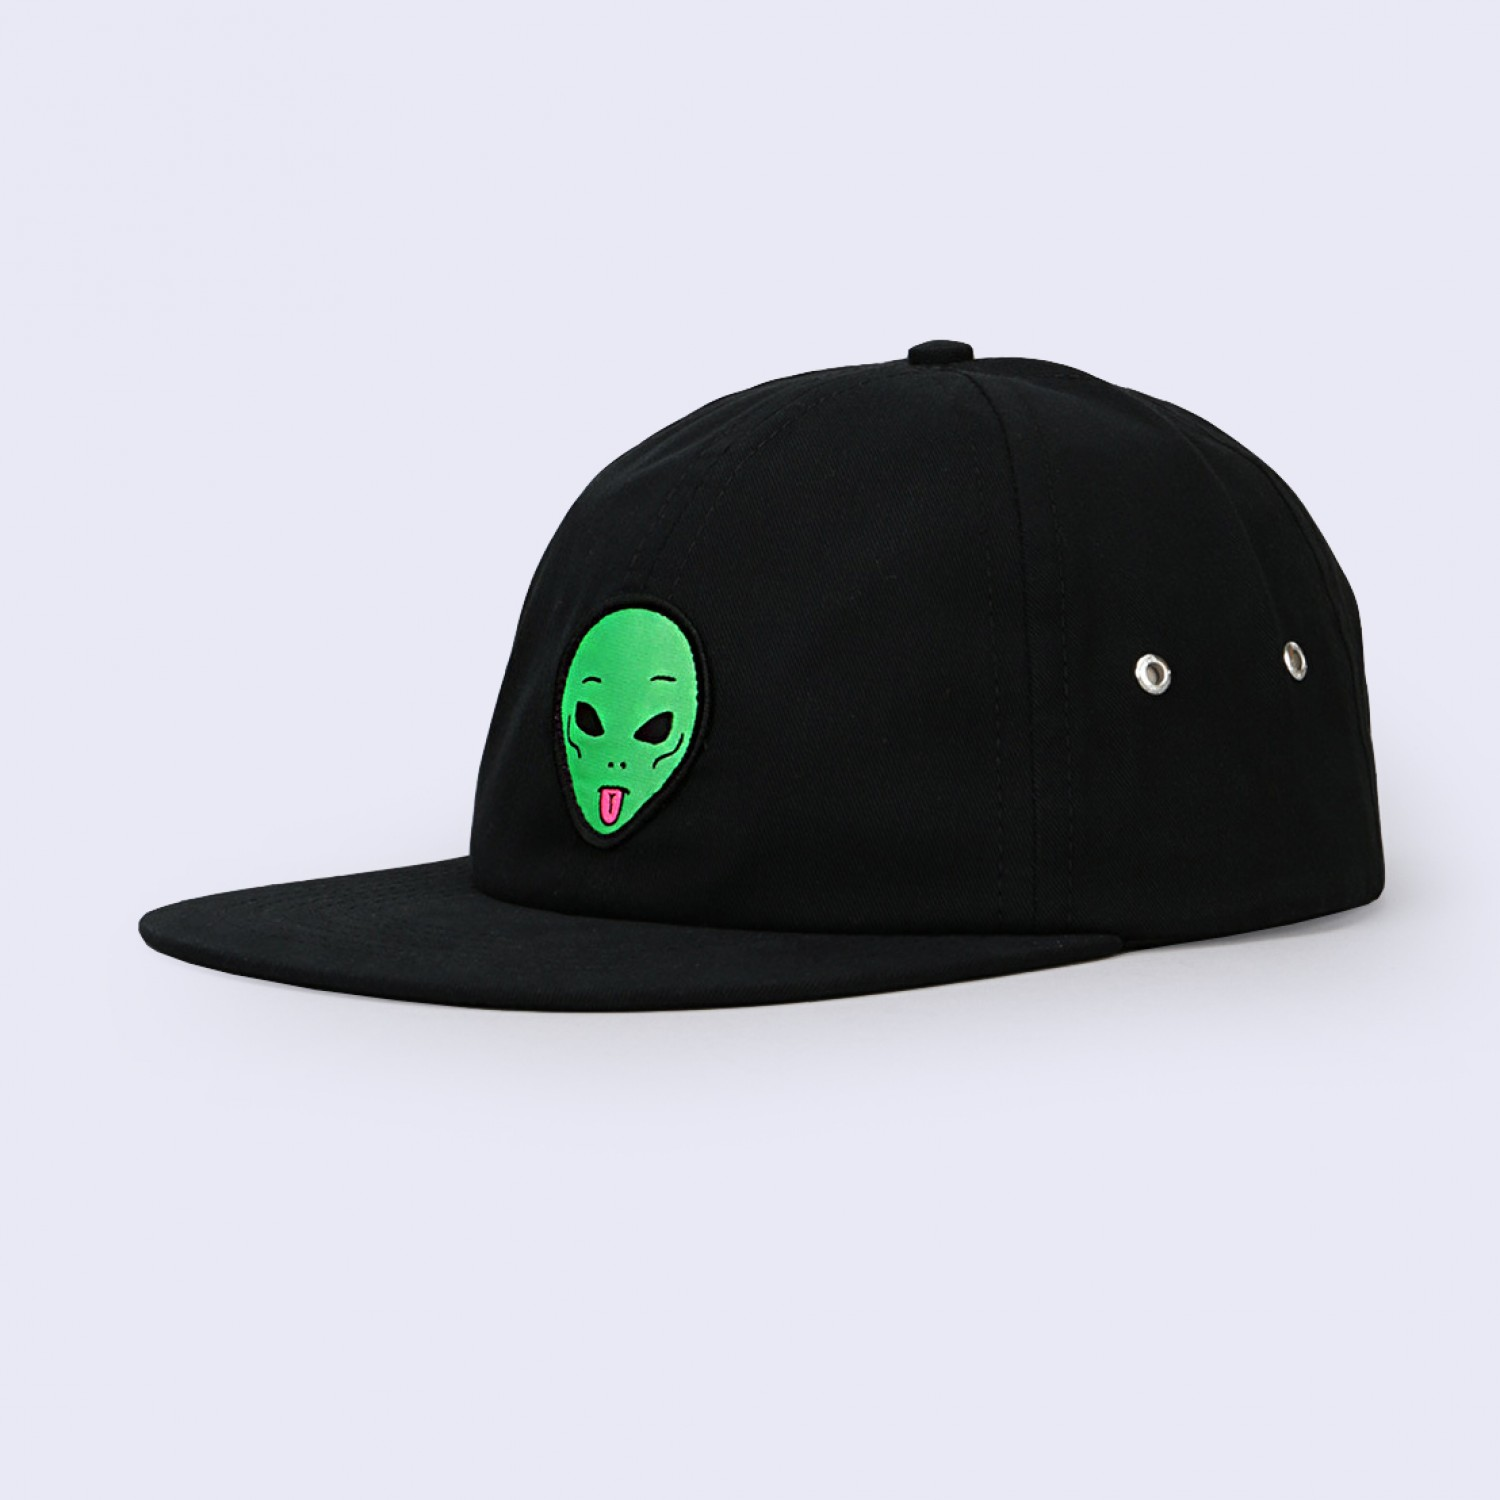 Кепка RIPNDIP - We Out Here Unstructured  6 Panel Black